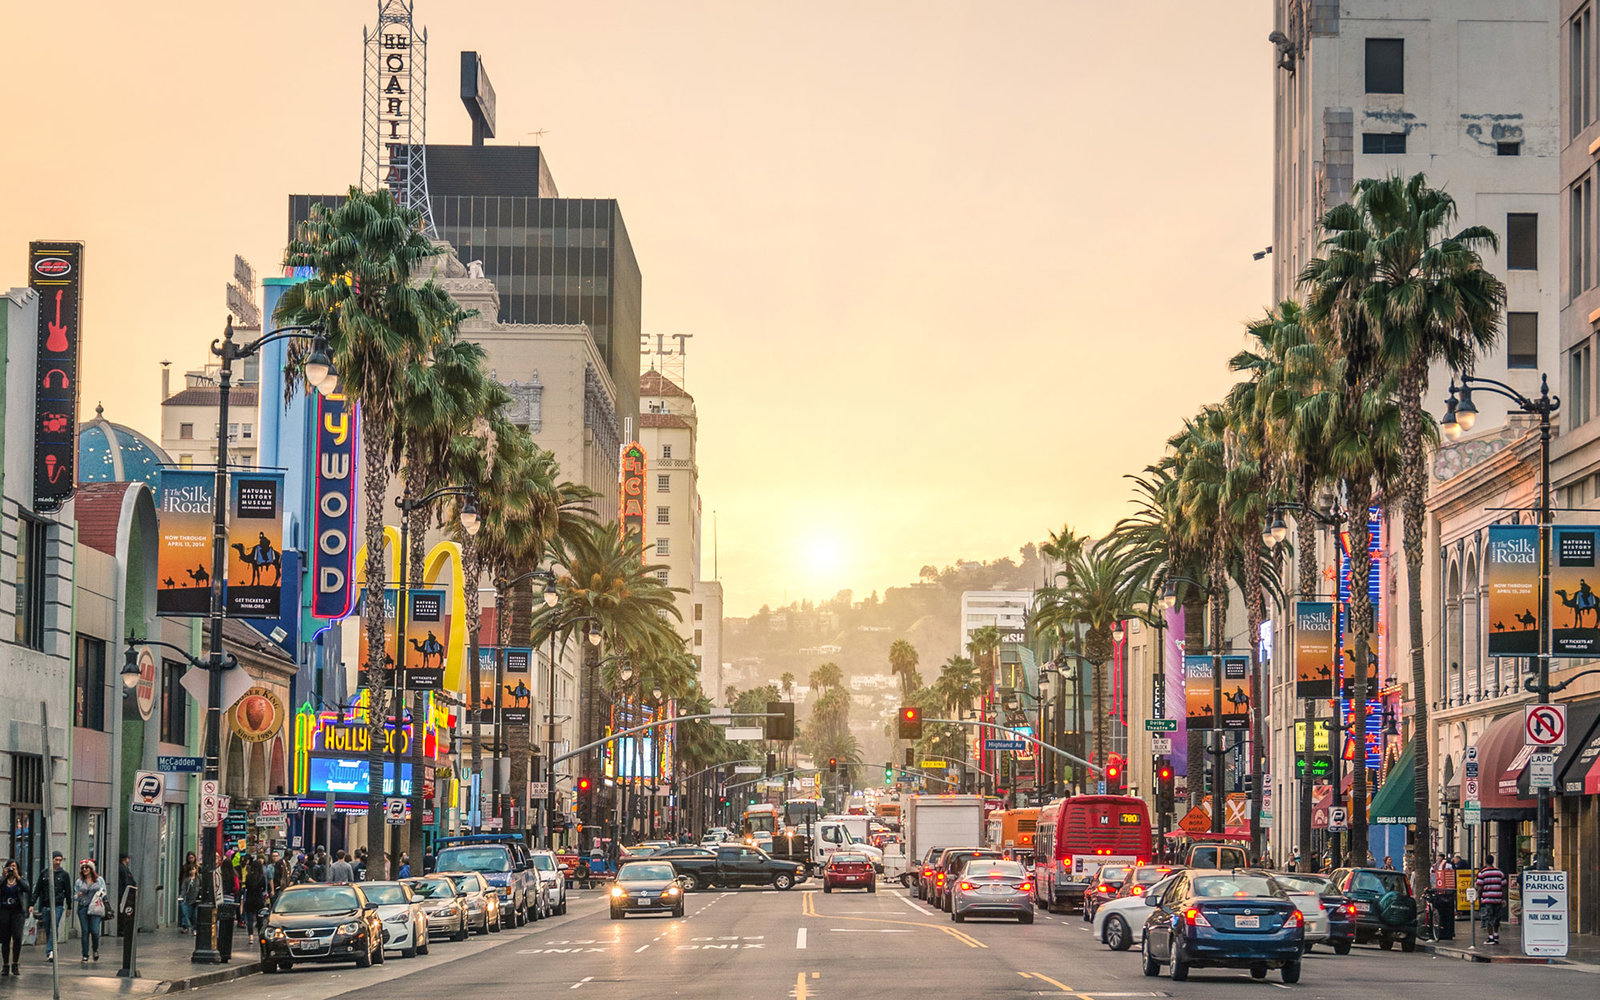 LOS ANGELES - DECEMBER 18, 2013: View of Hollywood Boulevard at sunset. In 1958, the Hollywood Walk of Fame was created on this street as a tribute to artists working in the entertainment industry.; Shutterstock ID 186048416